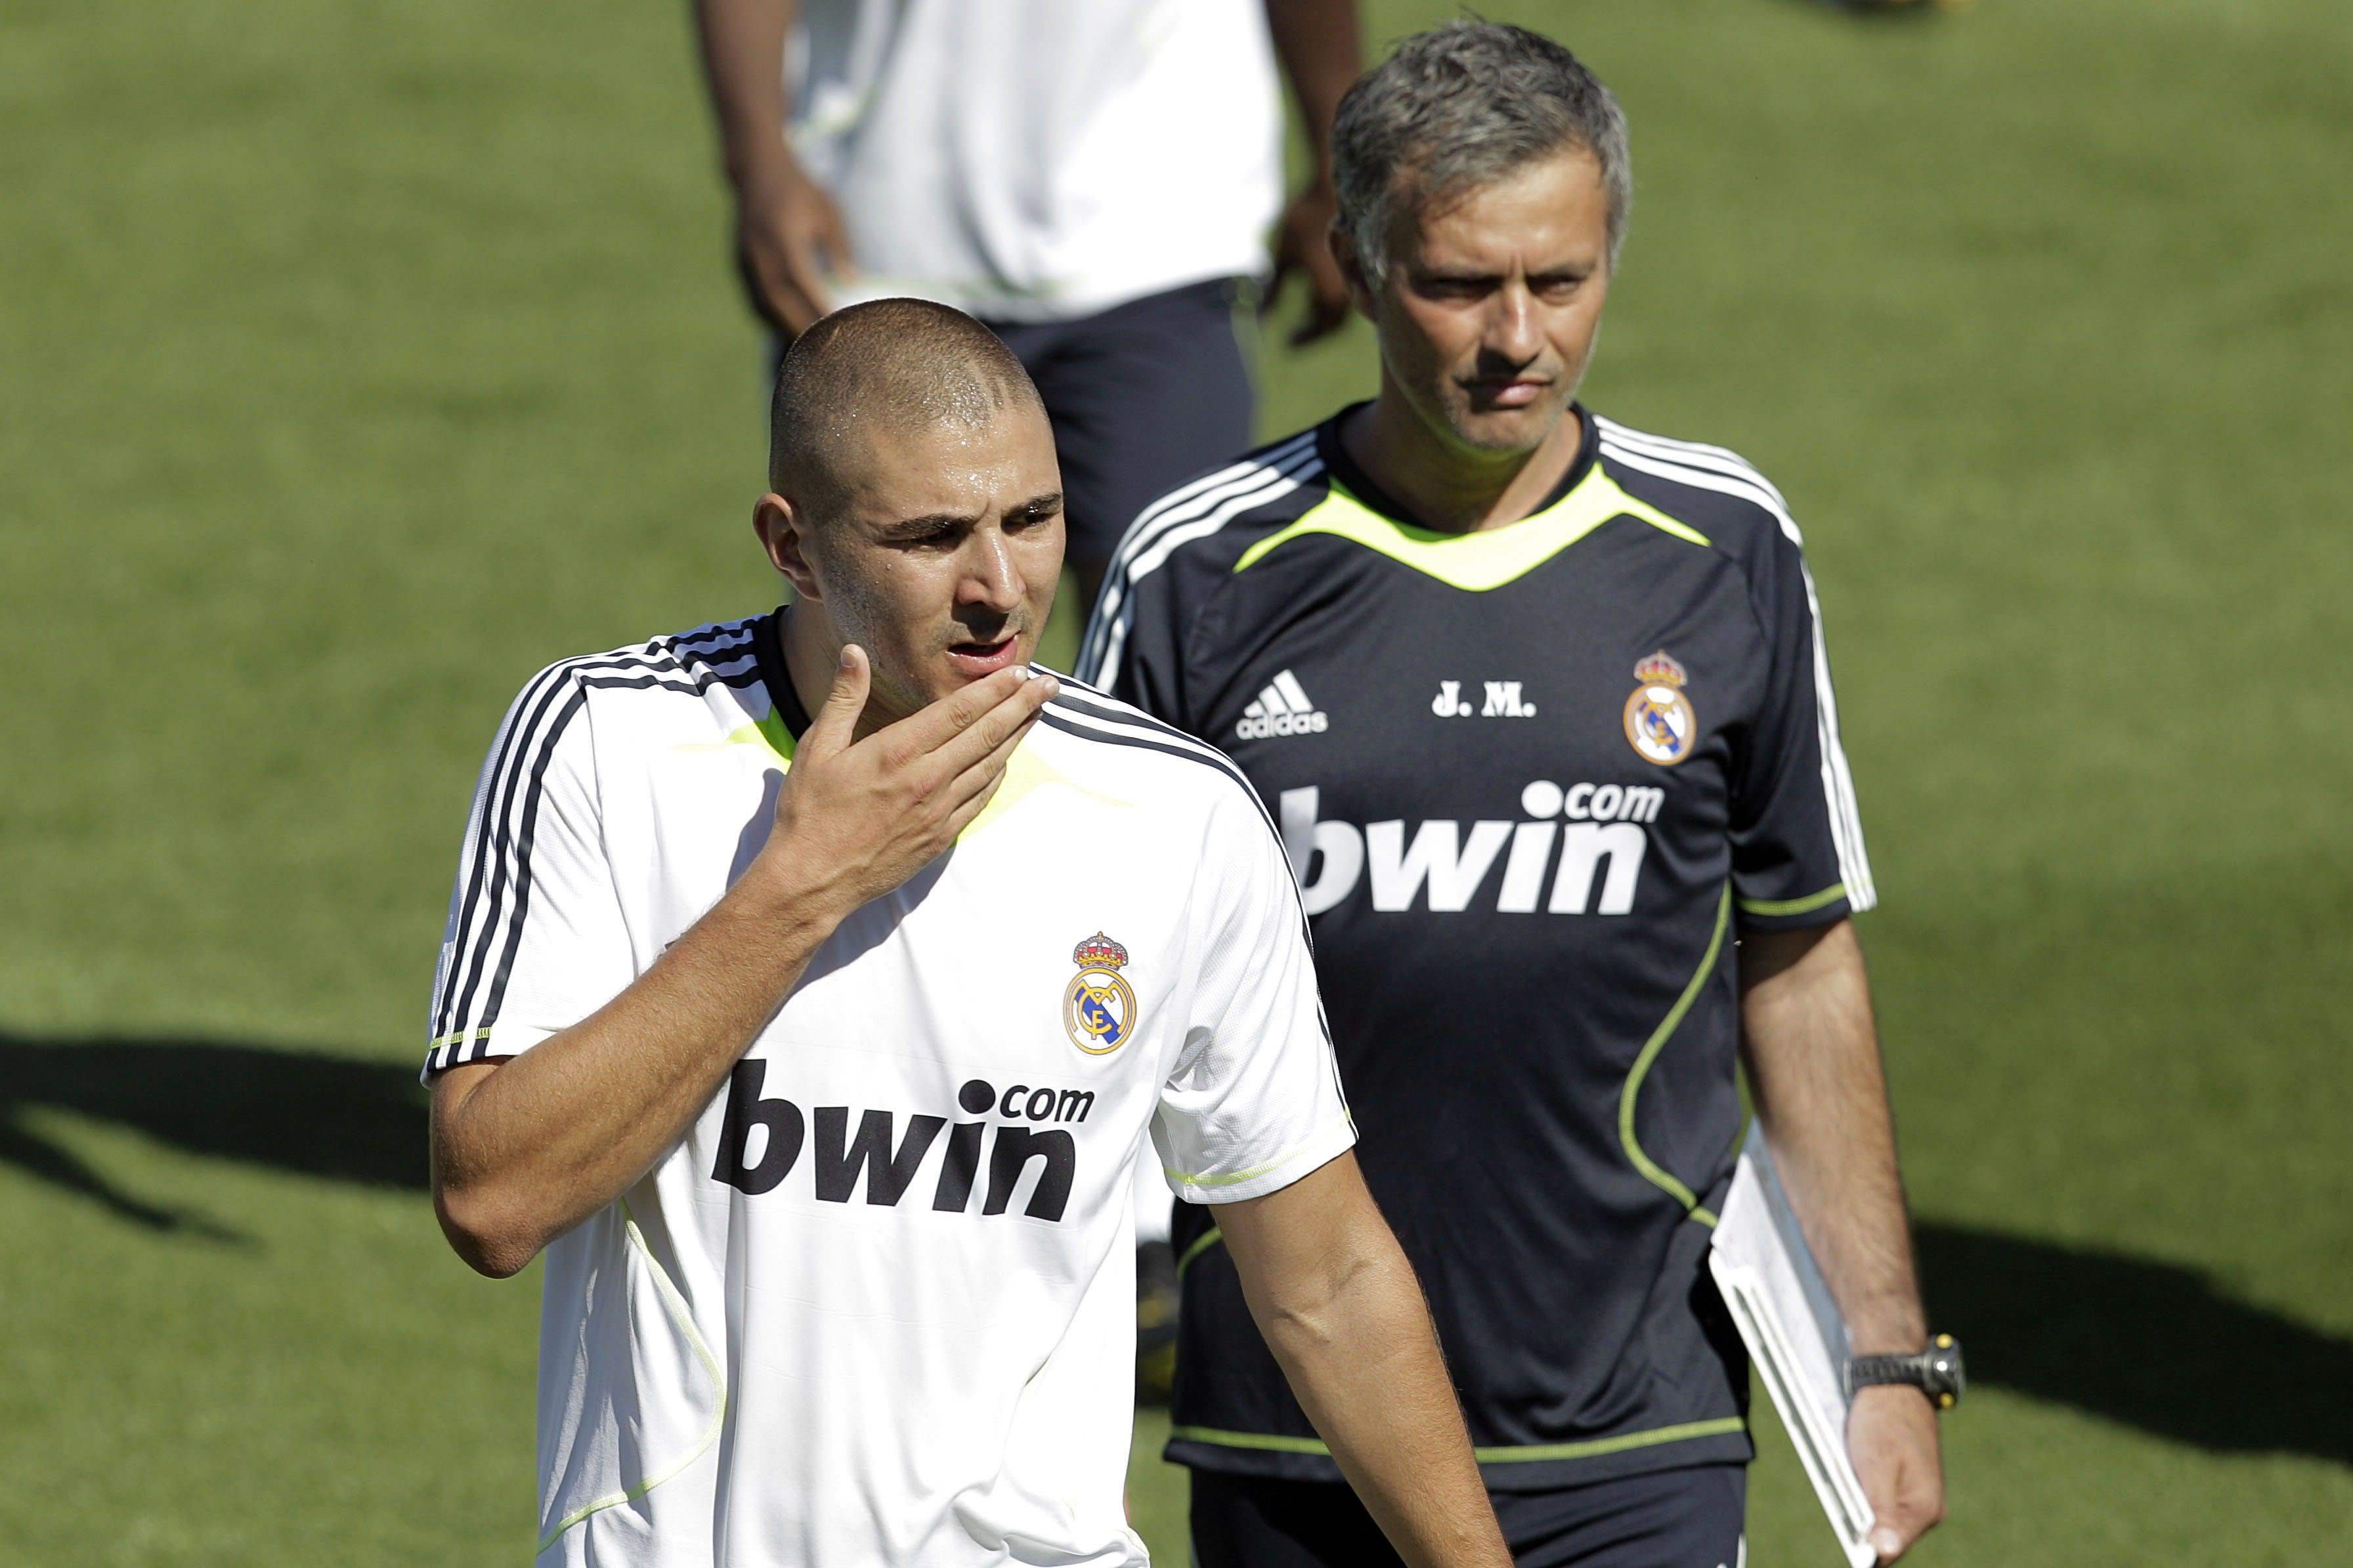 photo Karim Benzema telechargement gratuit